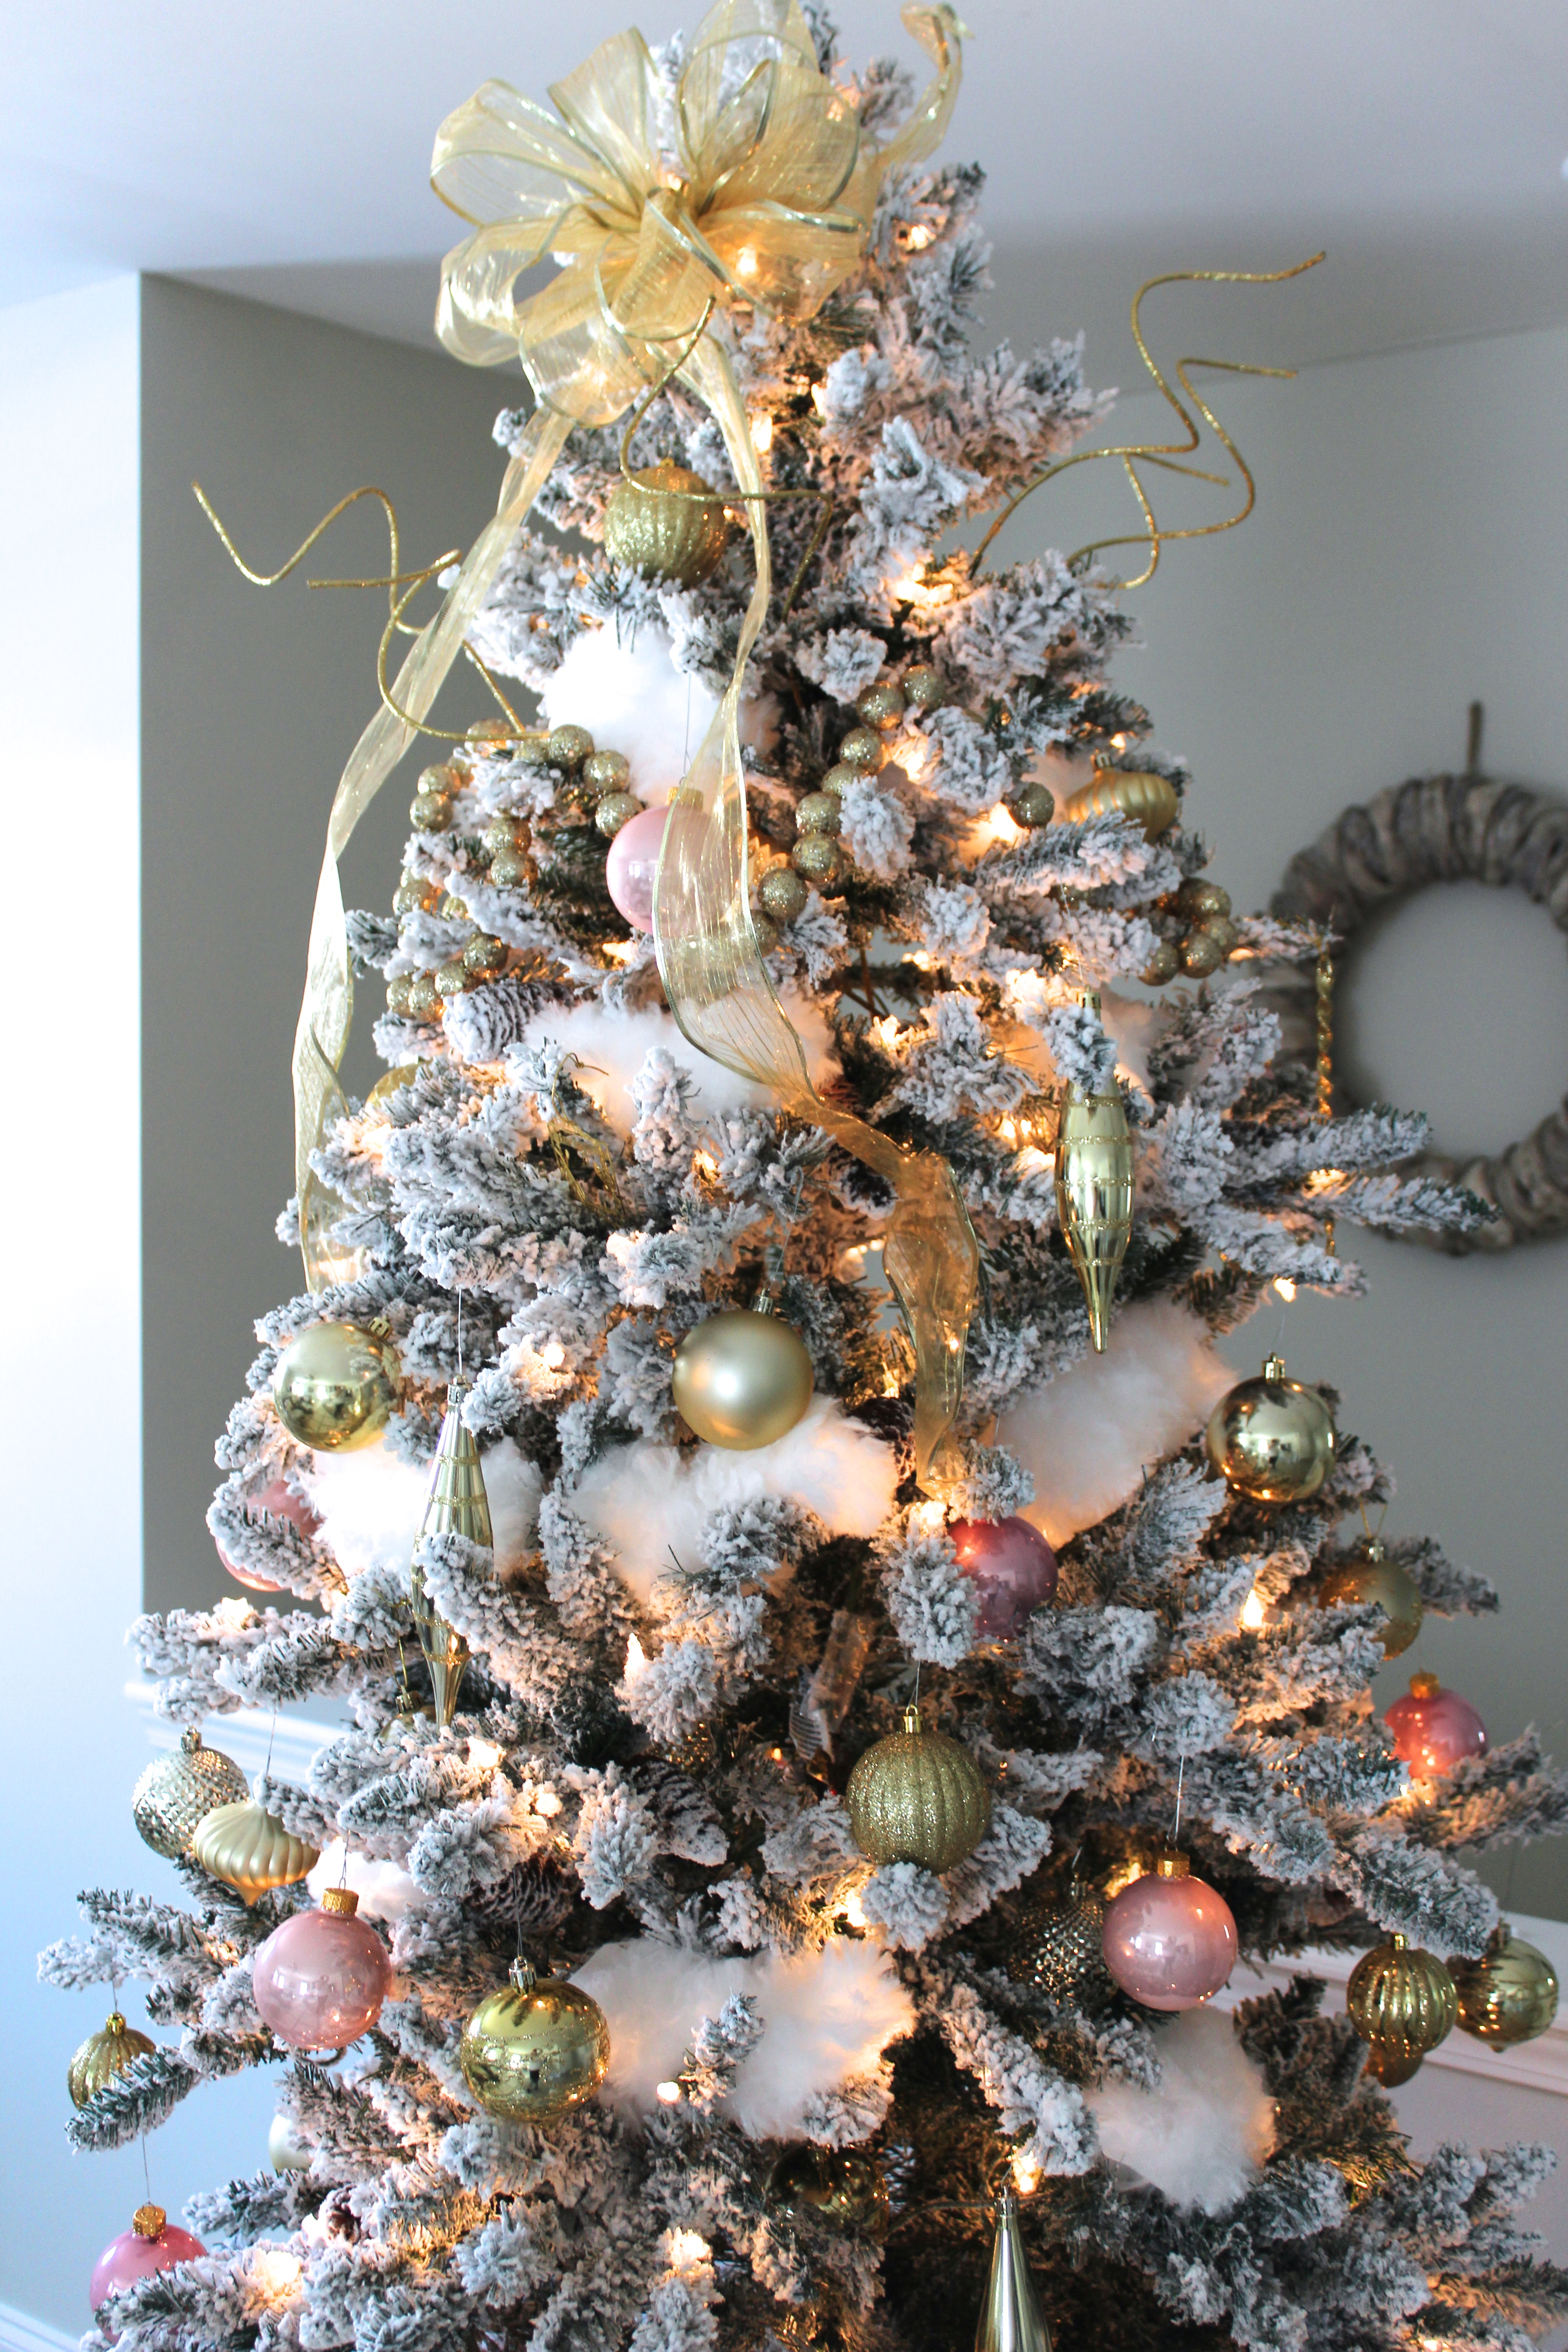 How To Keep Cats Away From Christmas Tree.Christmas Tree Round Up Robyn S Southern Nest